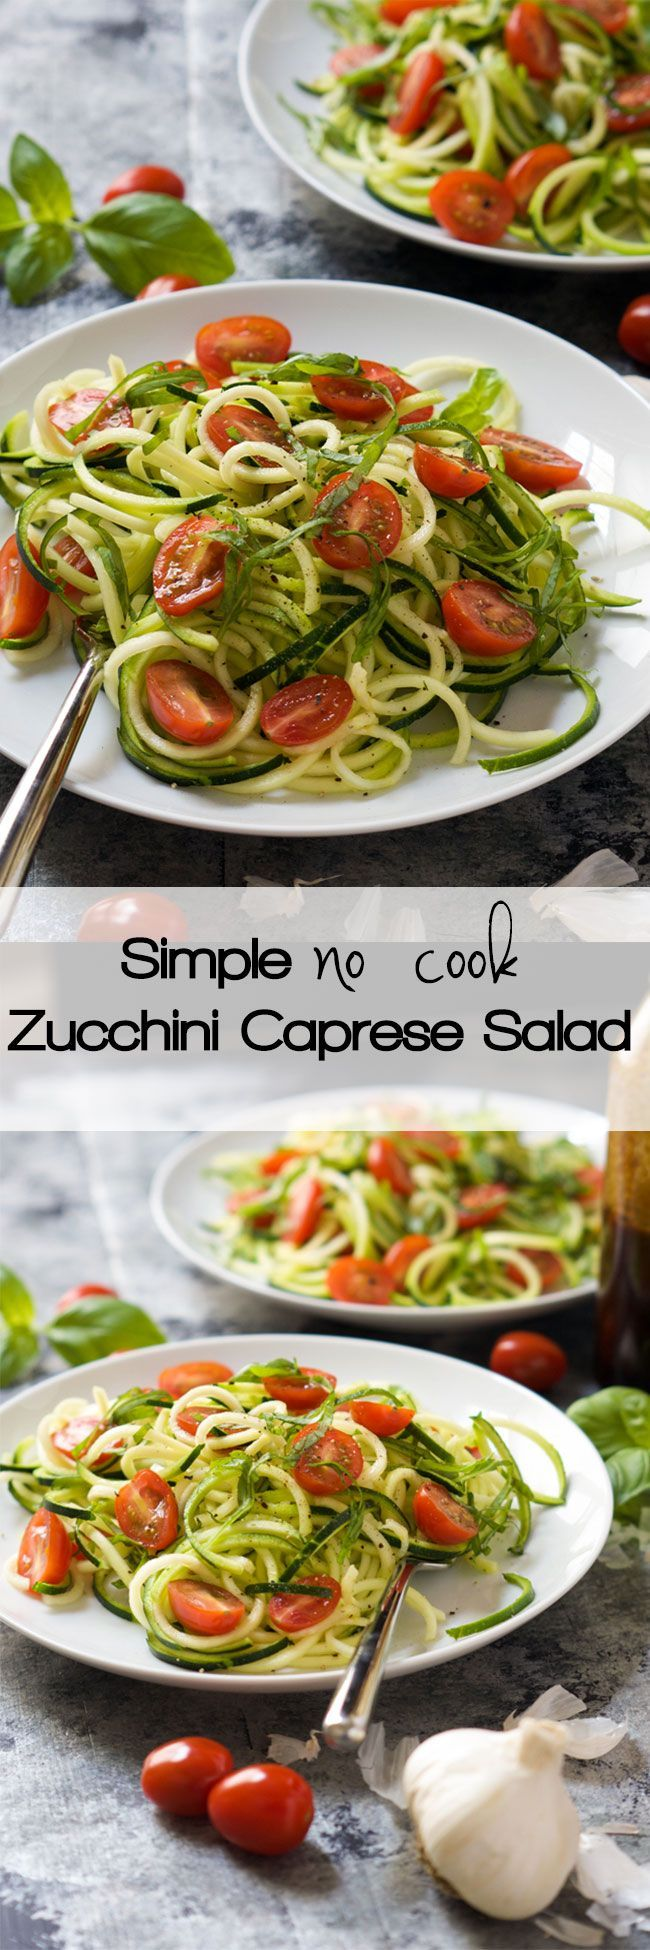 Raw Cold Caprese Salad Recipe | easy, zucchini, zoodles, how to make, dressing, healthy, balsamic, tomato, best, simple, make ahead, spiralized, fresh, summer,